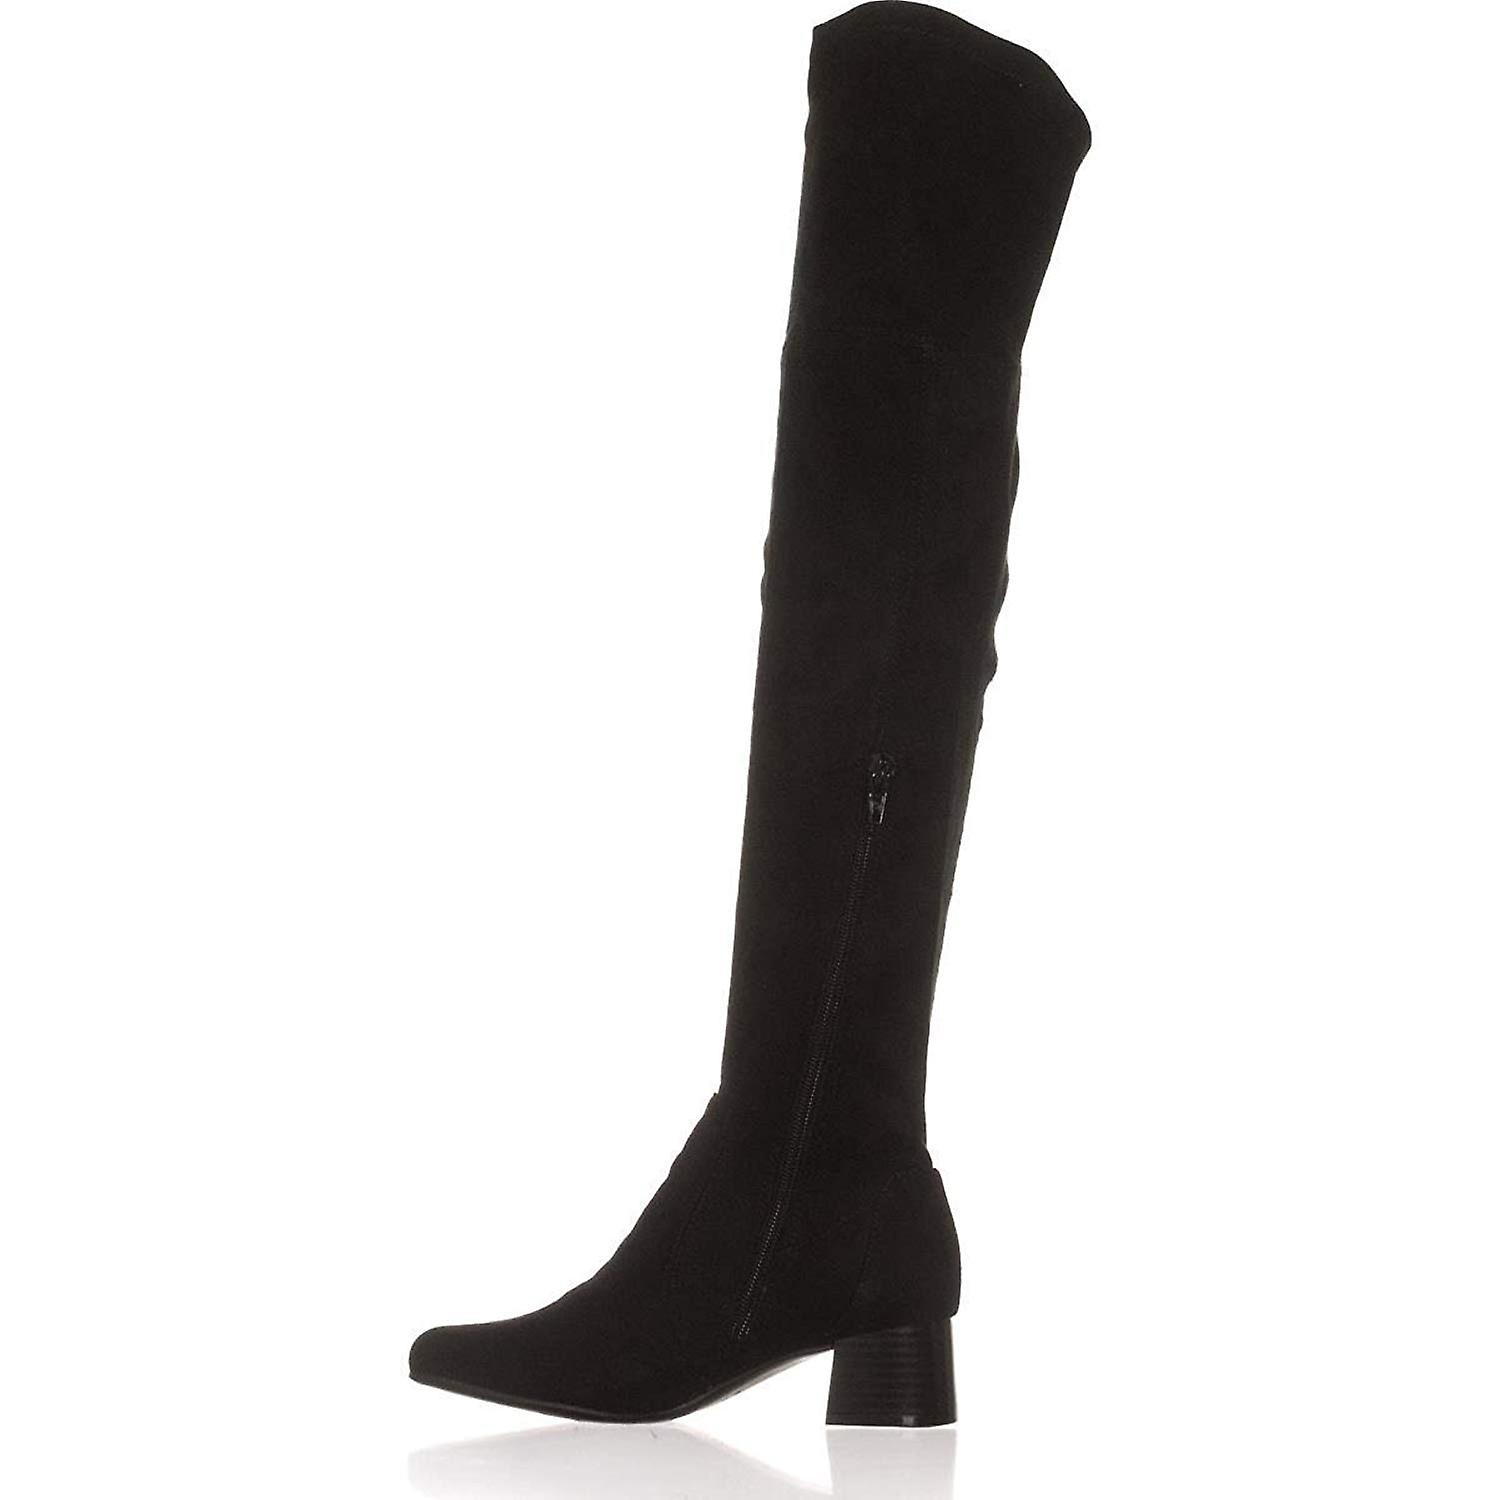 Naturalizer Womens Danton Fabric Closed Toe Over Knee Fashion Boots t9z7V